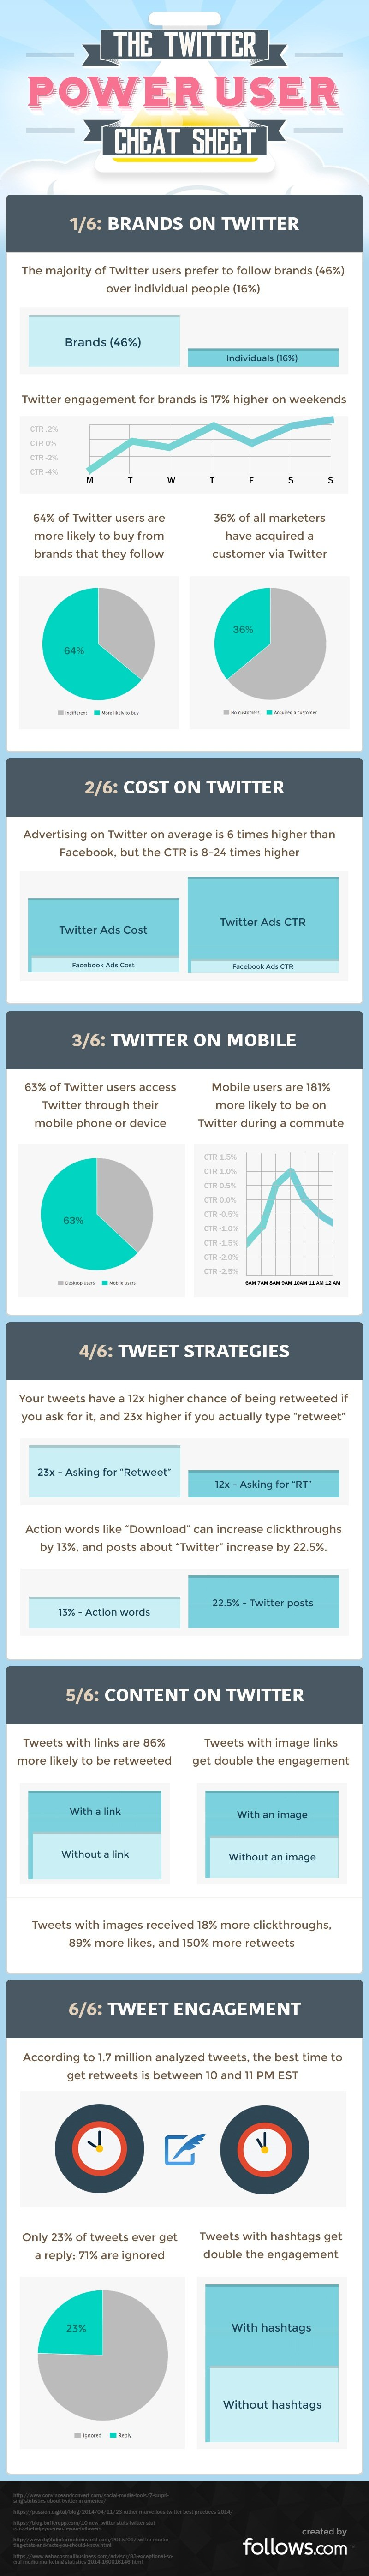 Ten #Twitter secrets you should know #SMM #Infographic